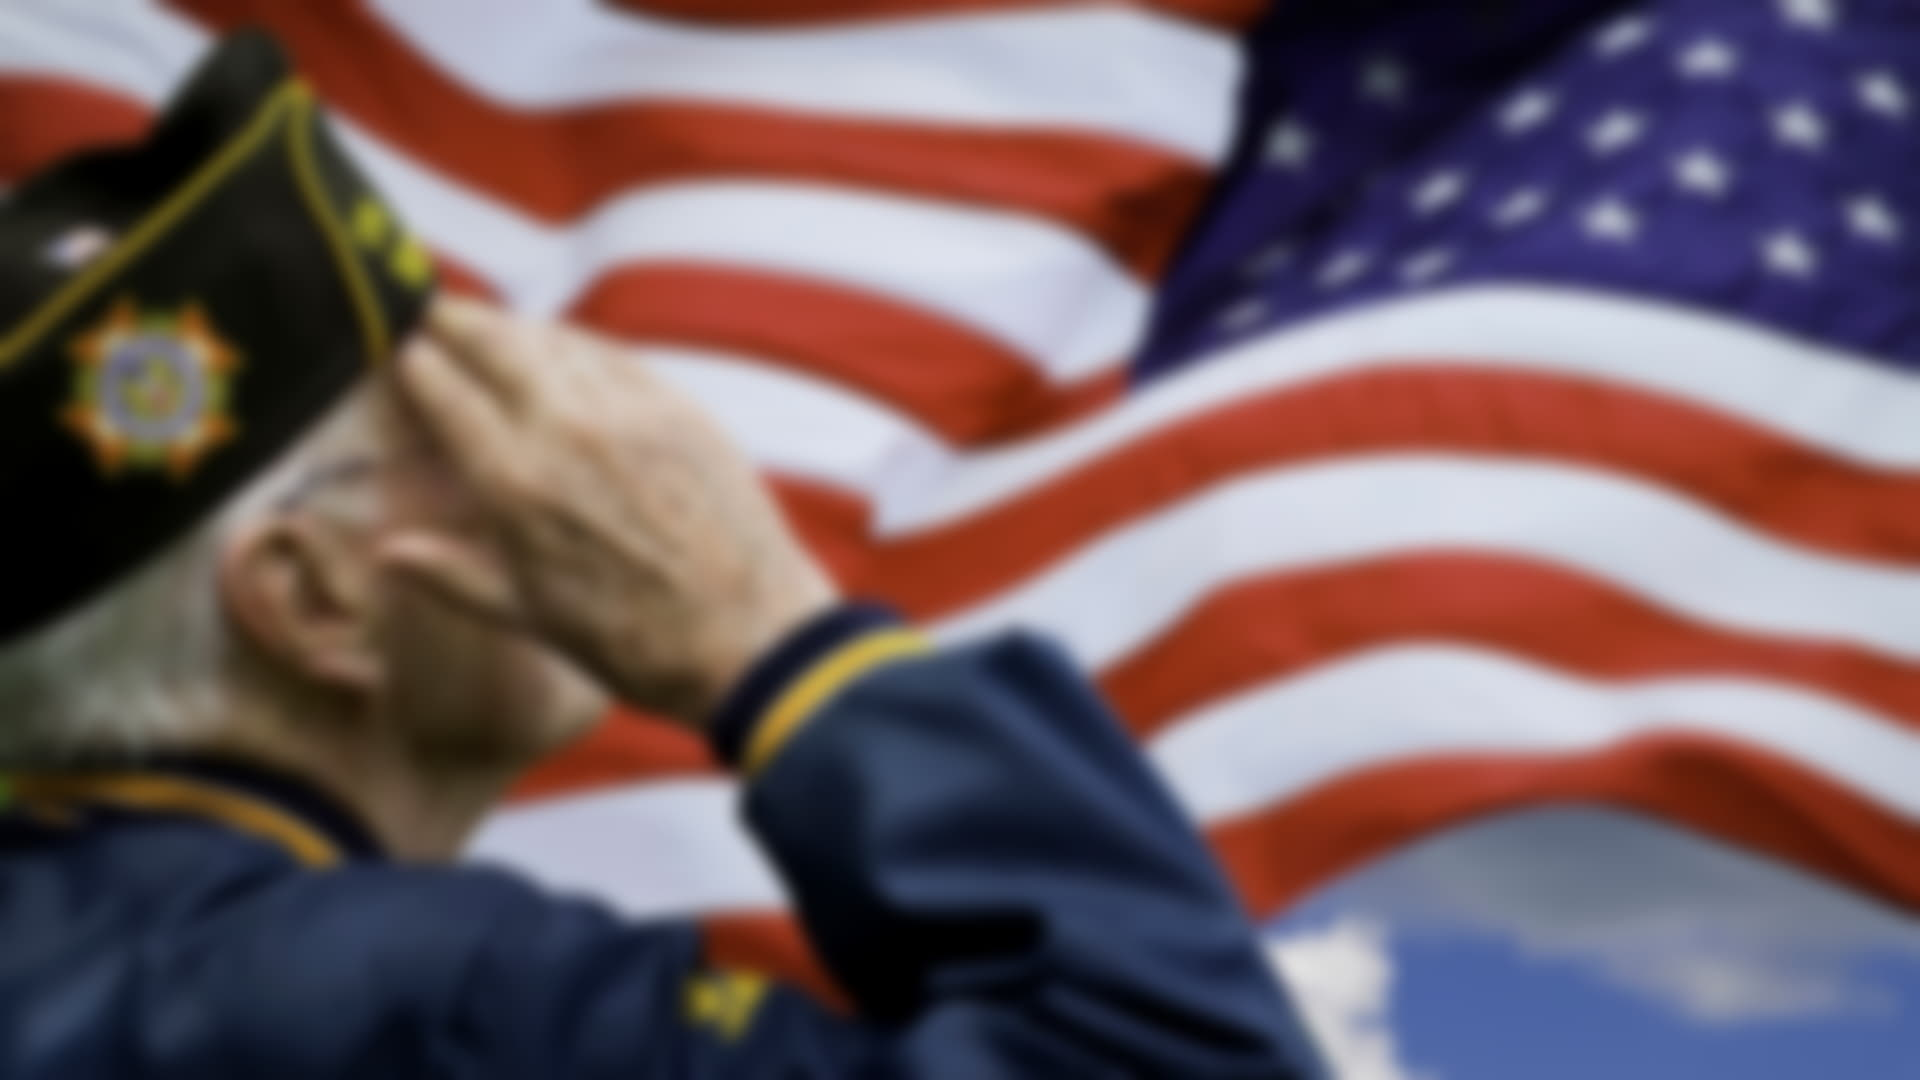 Veterans Day - Flag of the United States